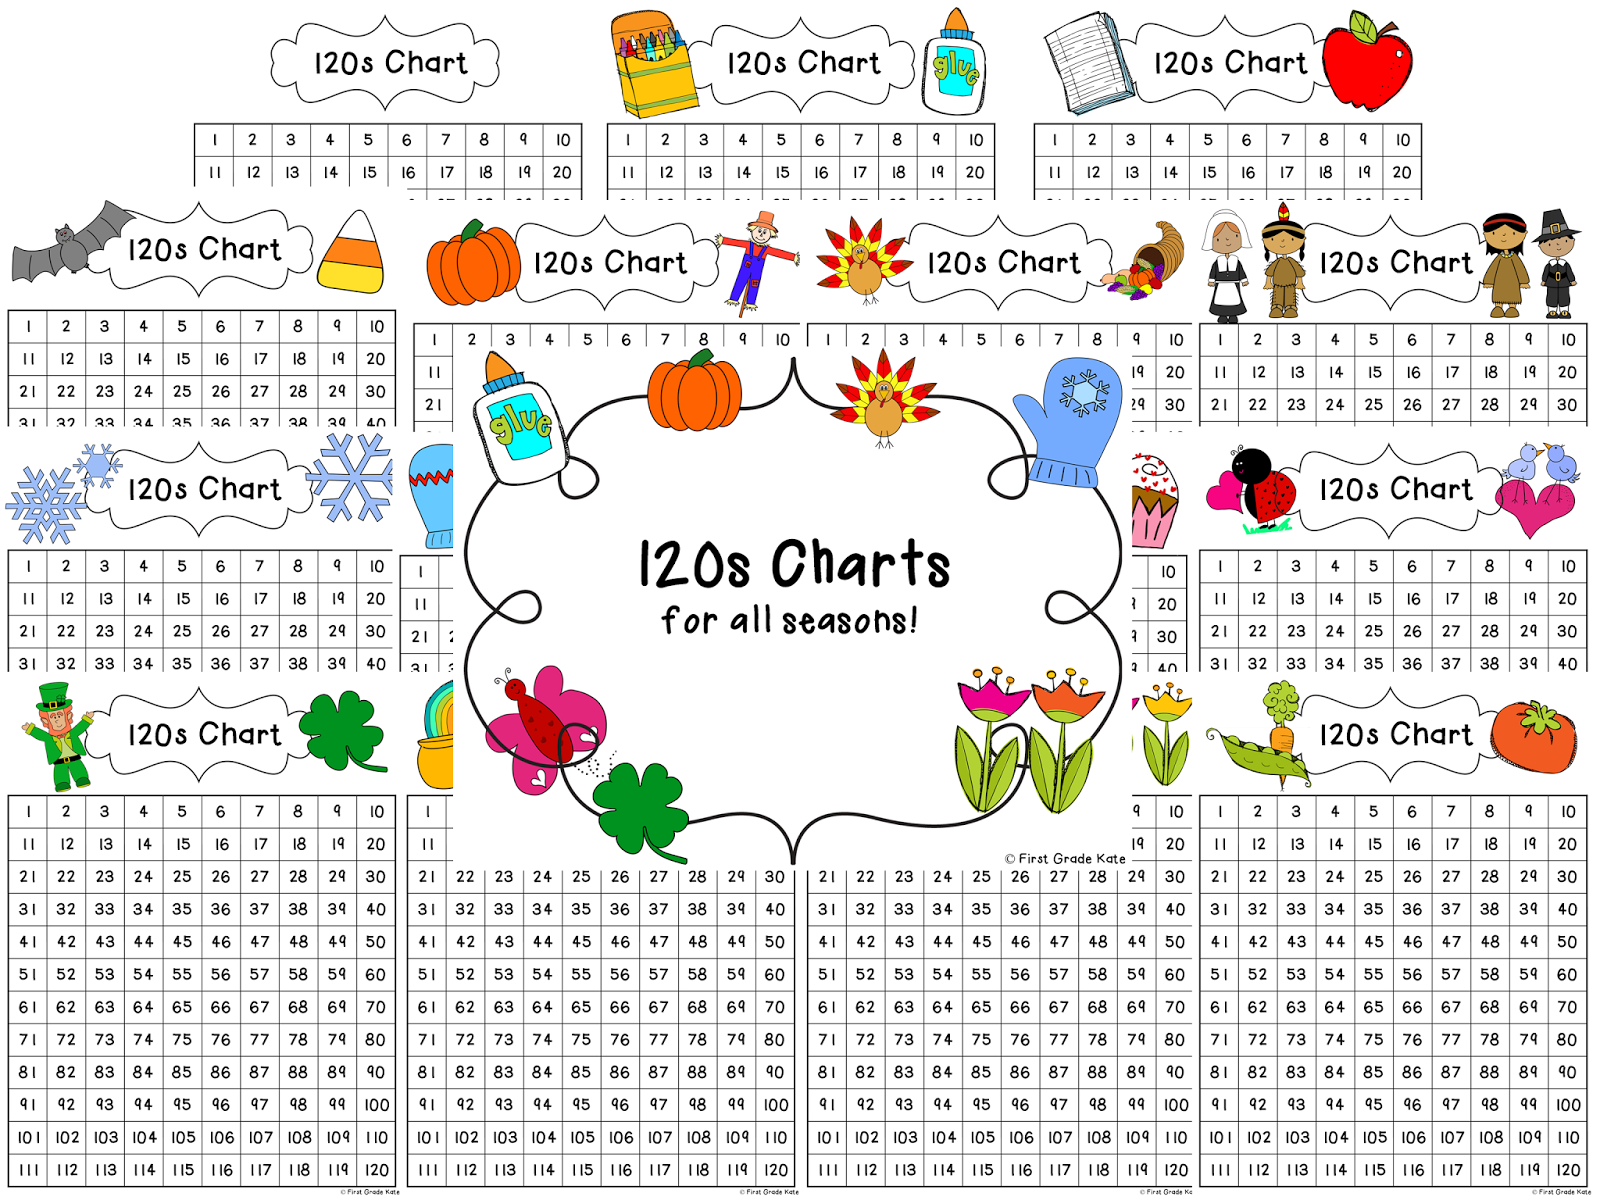 http://www.teacherspayteachers.com/Product/Number-SenseAll-Year-Long-785884